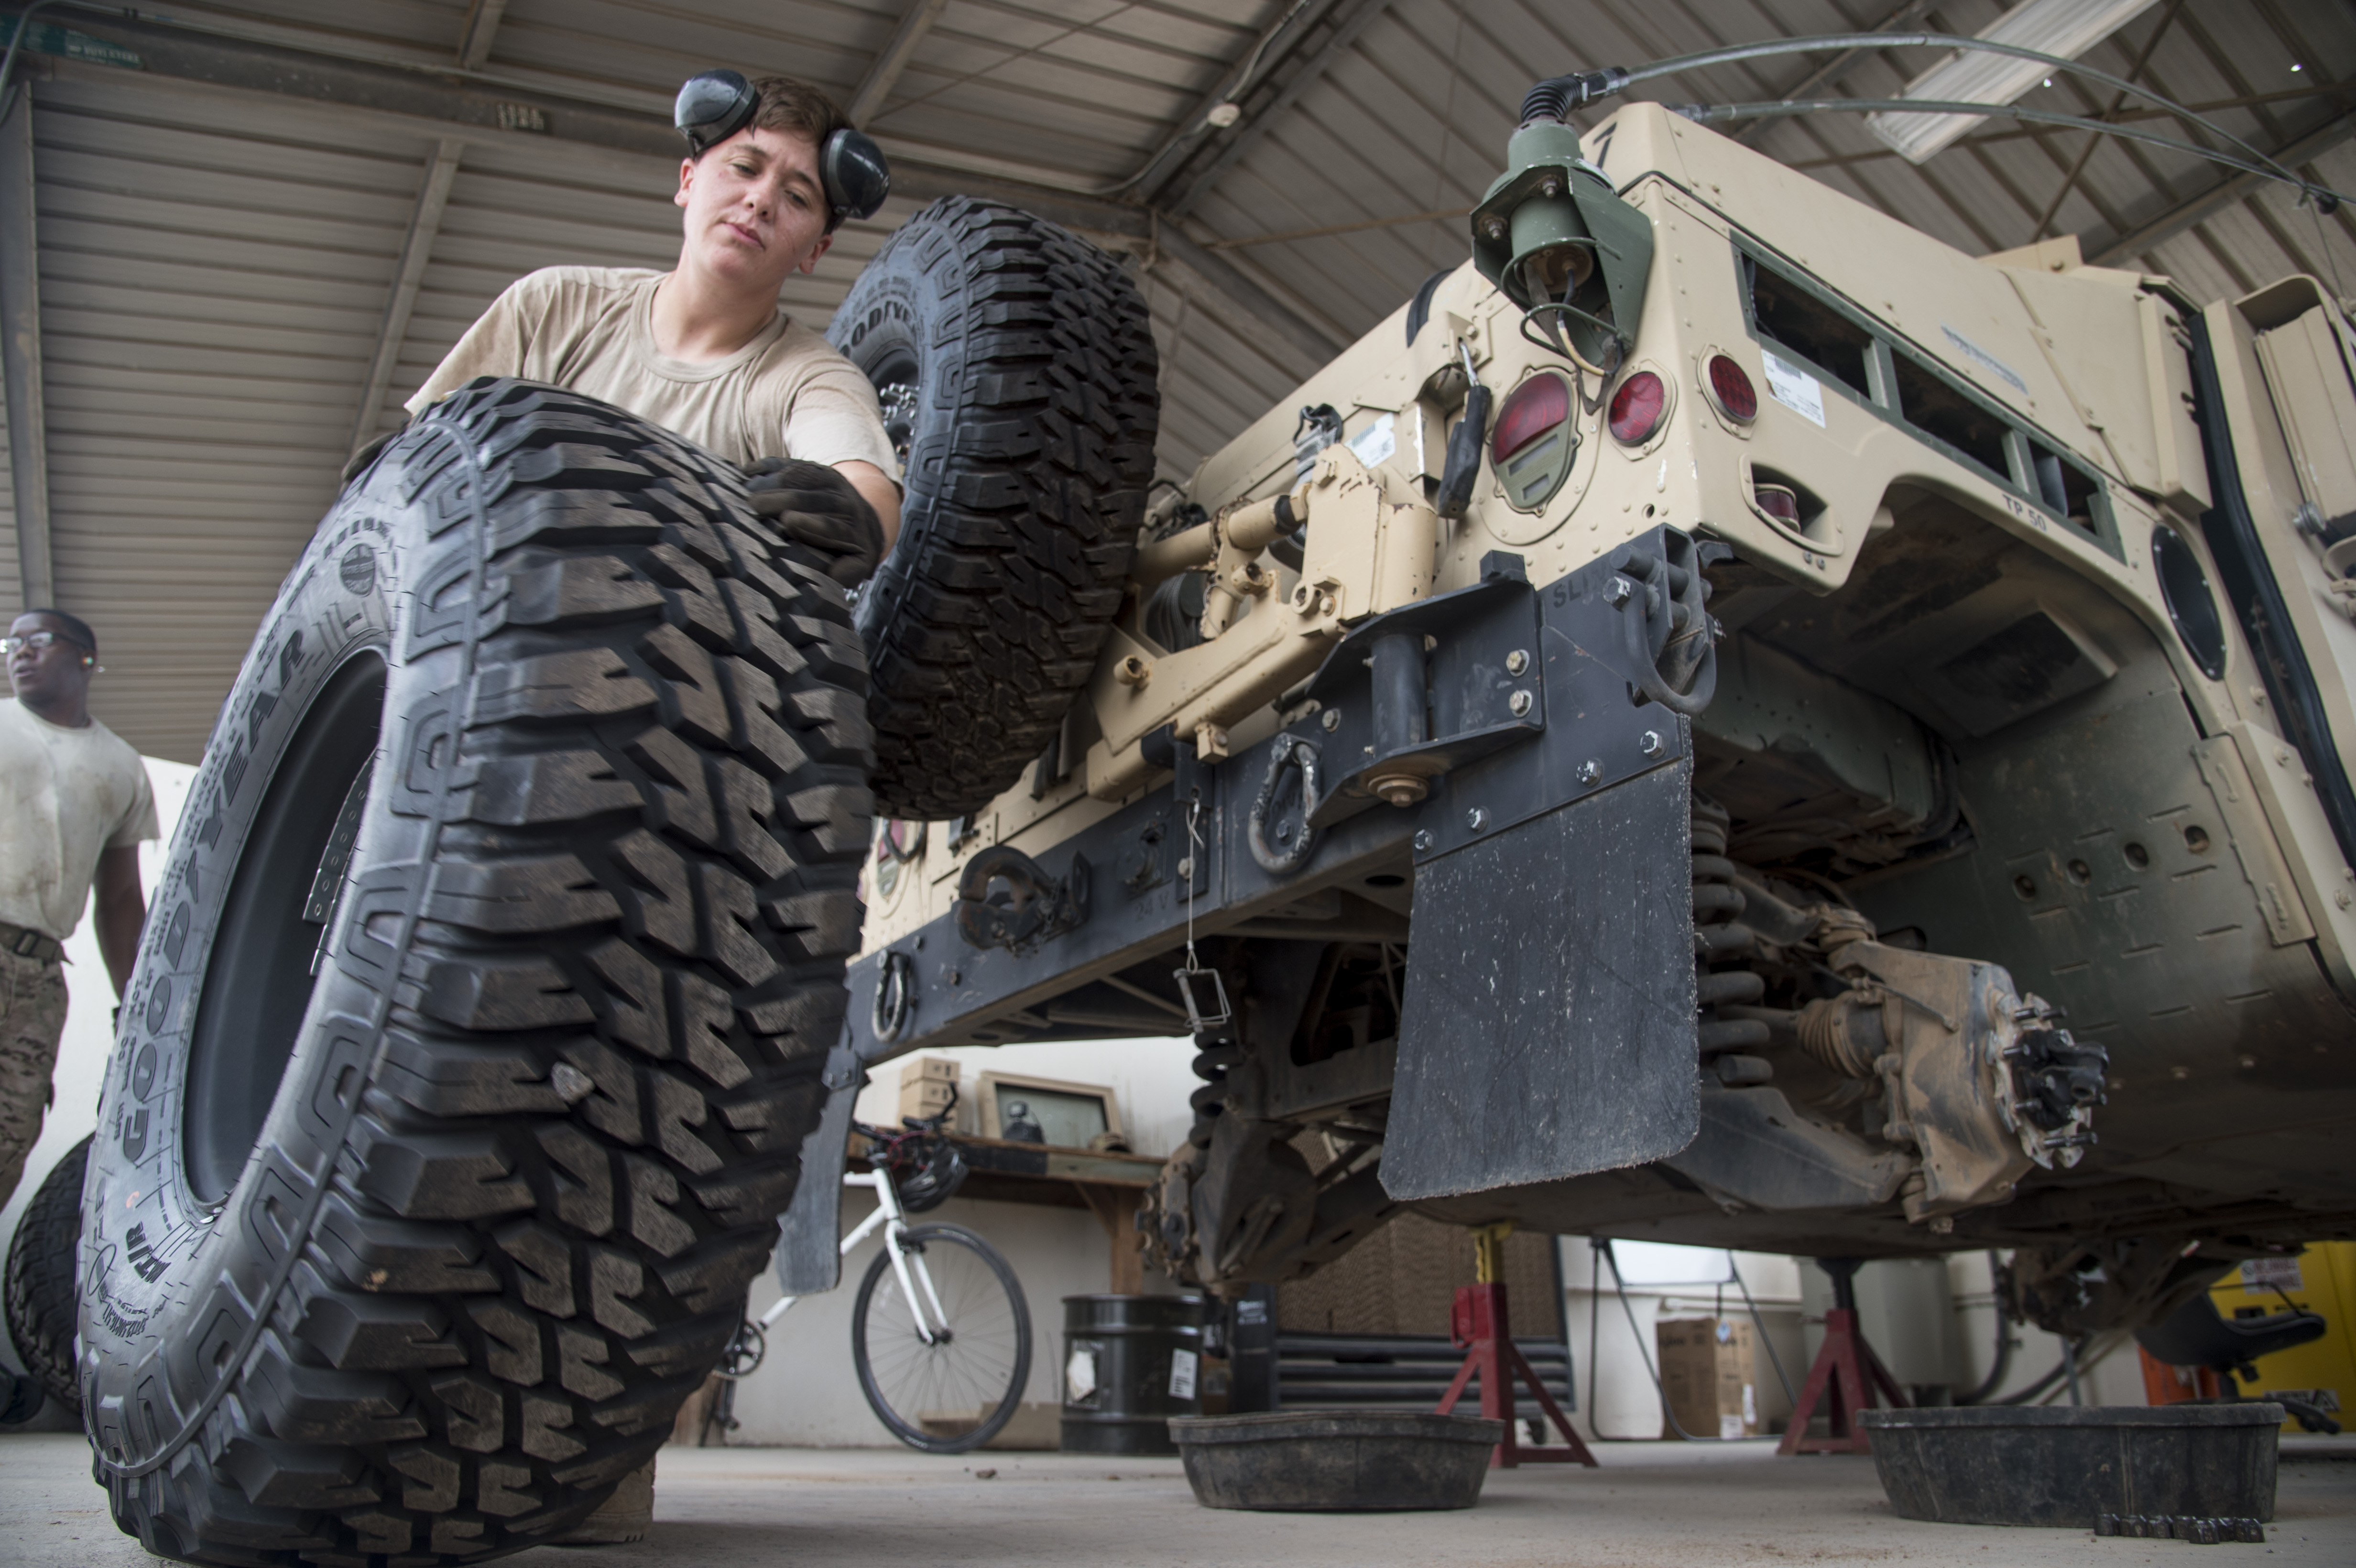 U.S. Army Spc. Kelsi May of the 1st Battalion, 153rd Infantry Regiment, deployed with the Combined Joint Task Force-Horn of Africa (CJTF-HOA) in Camp Lemonnier, Djibouti, rolls a tire to be replaced during a biannual service inspection of a Humvee, May 29, 2017. The soldiers maintain vehicles to support efforts in countering regional violent extremist organizations. (U.S. Air National Guard photo by Tech. Sgt. Joe Harwood)